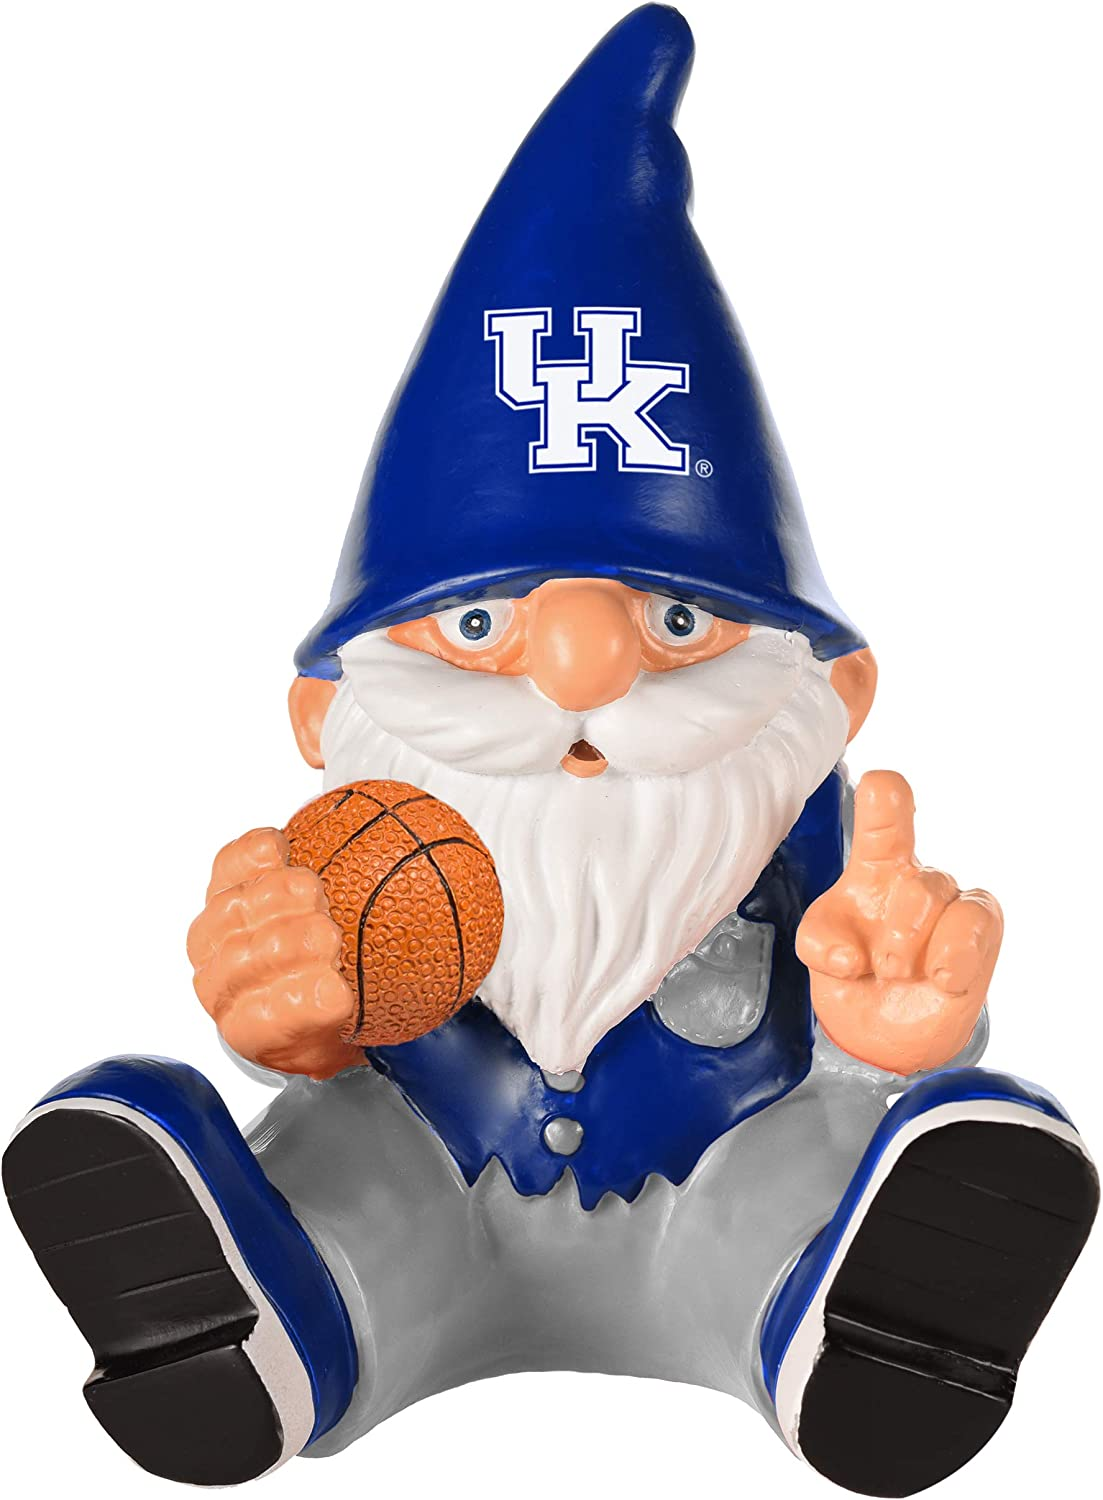 "Kentucky 5"" Sitting Mini Gnome"